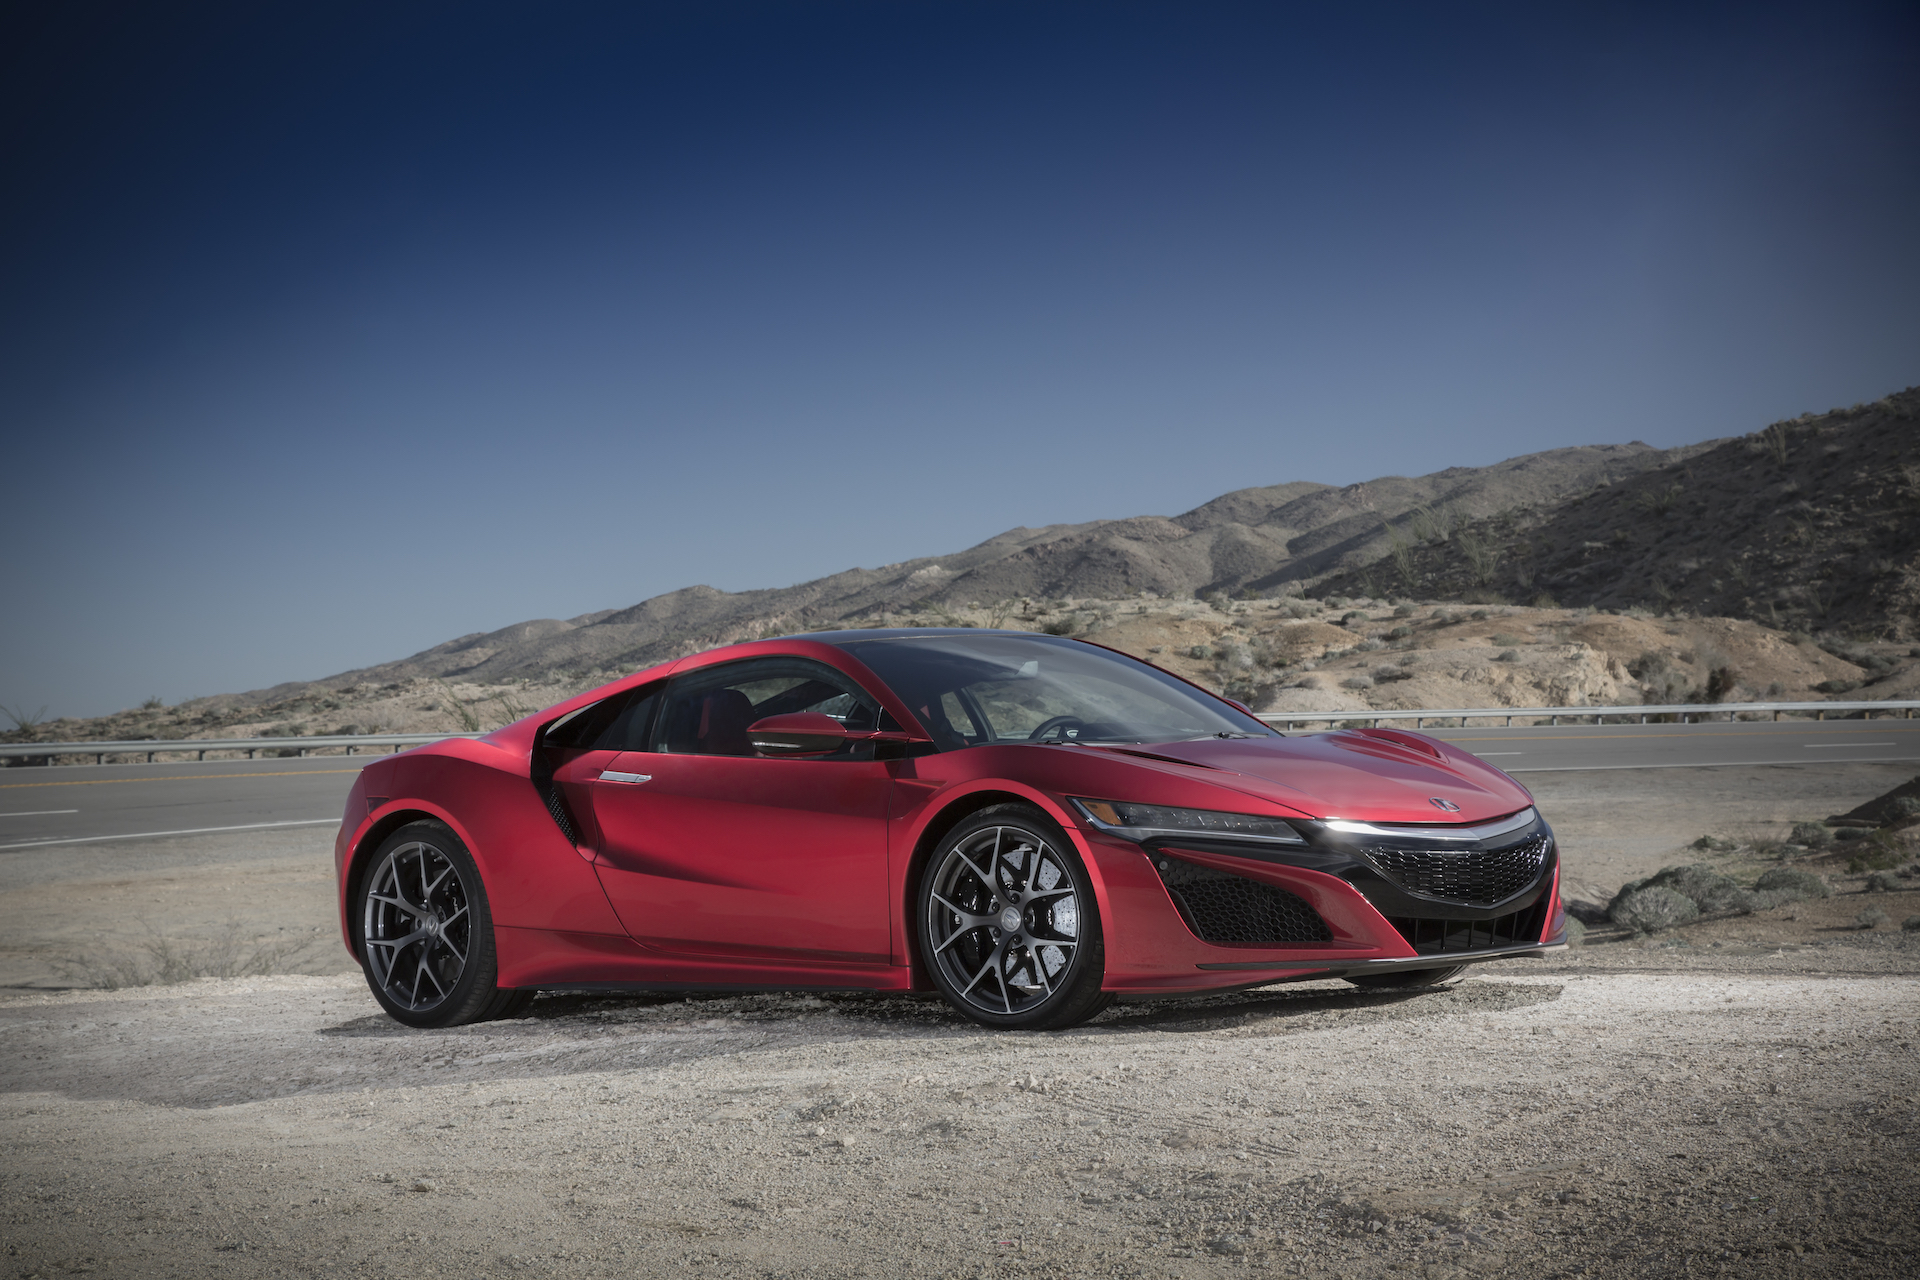 Motor Authority Best Car To Buy Nominee Acura NSX - Acura nsx motor